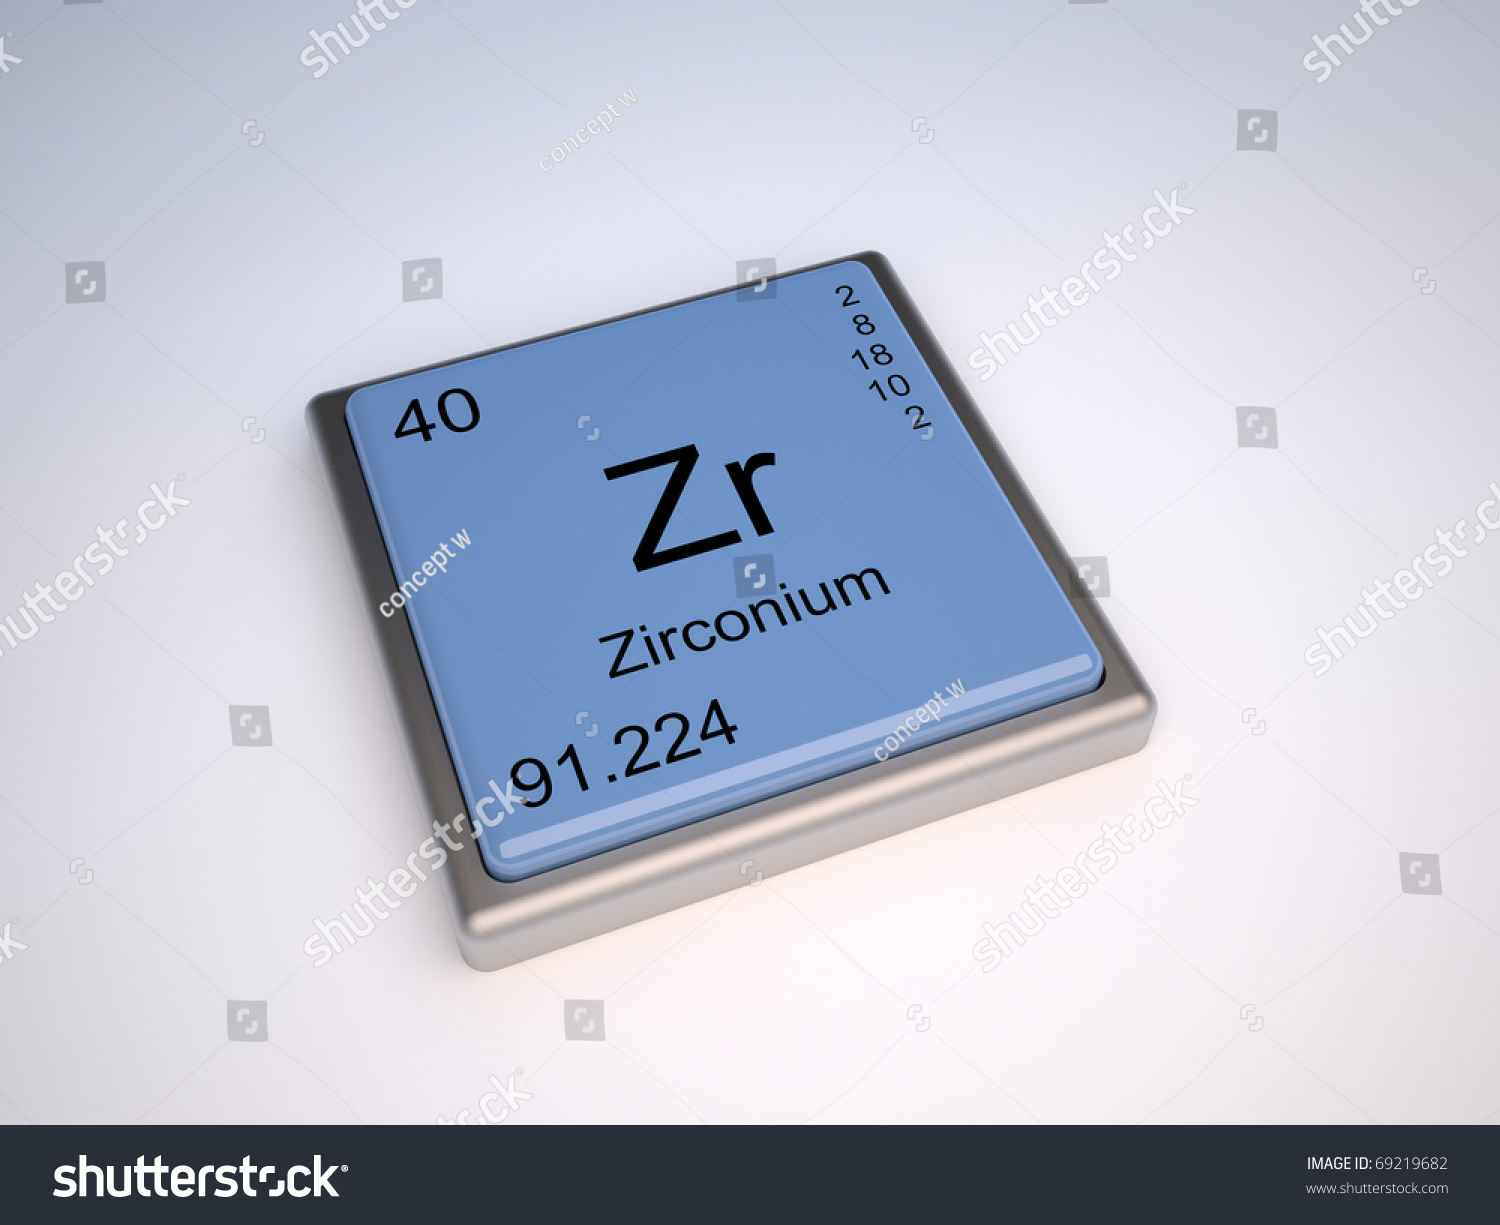 Zirconium chemical element periodic table symbol stock zirconium chemical element of the periodic table with symbol zr gamestrikefo Images